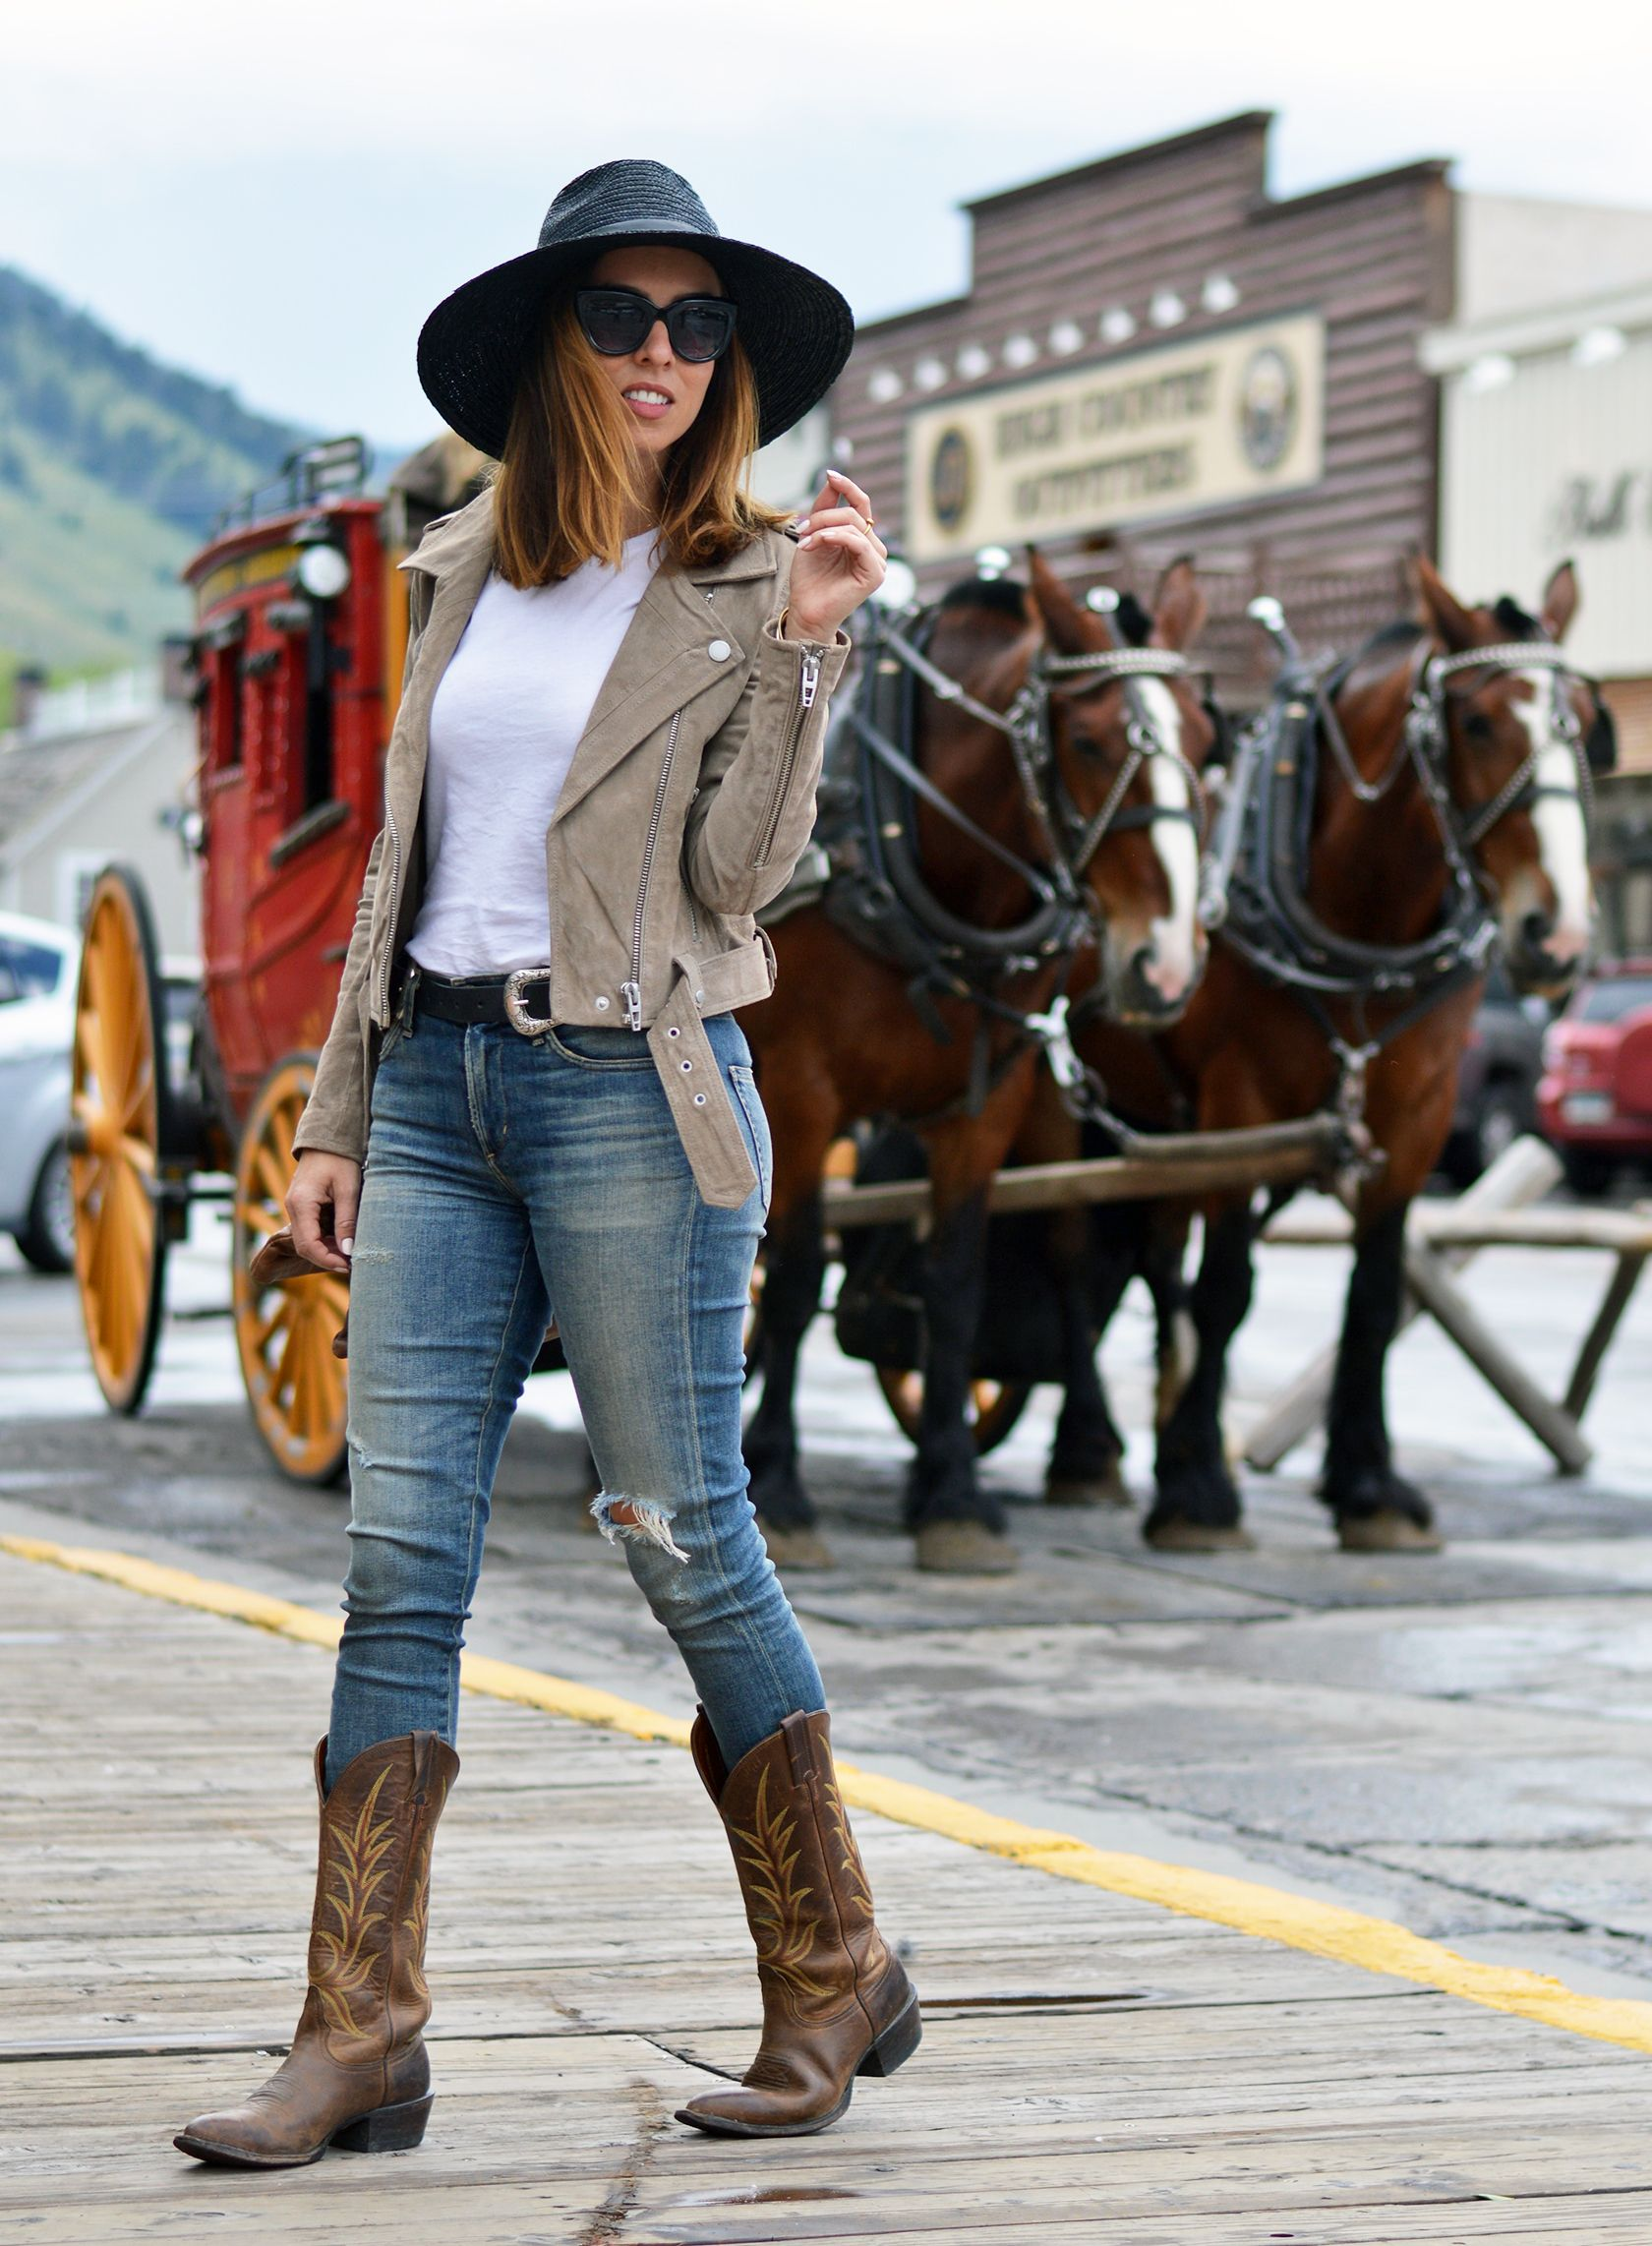 Are Cowboy Boots In Style Cowboy Boots From Day To Night Sydne Style Cowboy Boots Women Outfits Fall Western Boots Outfit Cowboy Boots Women Outfits [ 2284 x 1680 Pixel ]